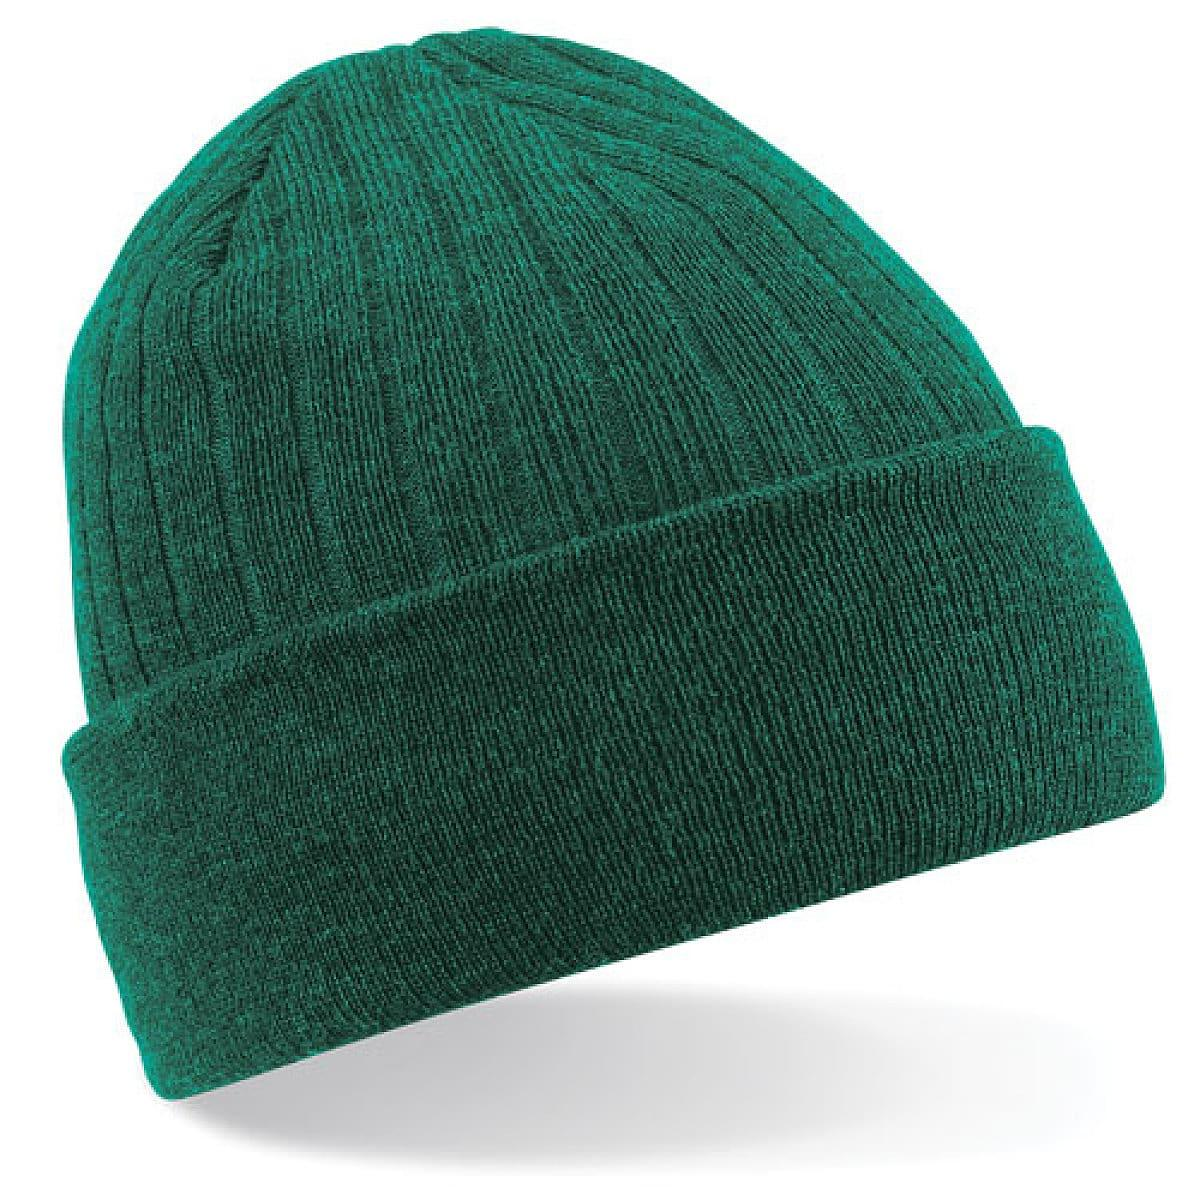 Beechfield Thinsulate Beanie Hat in Bottle Green (Product Code: B447)